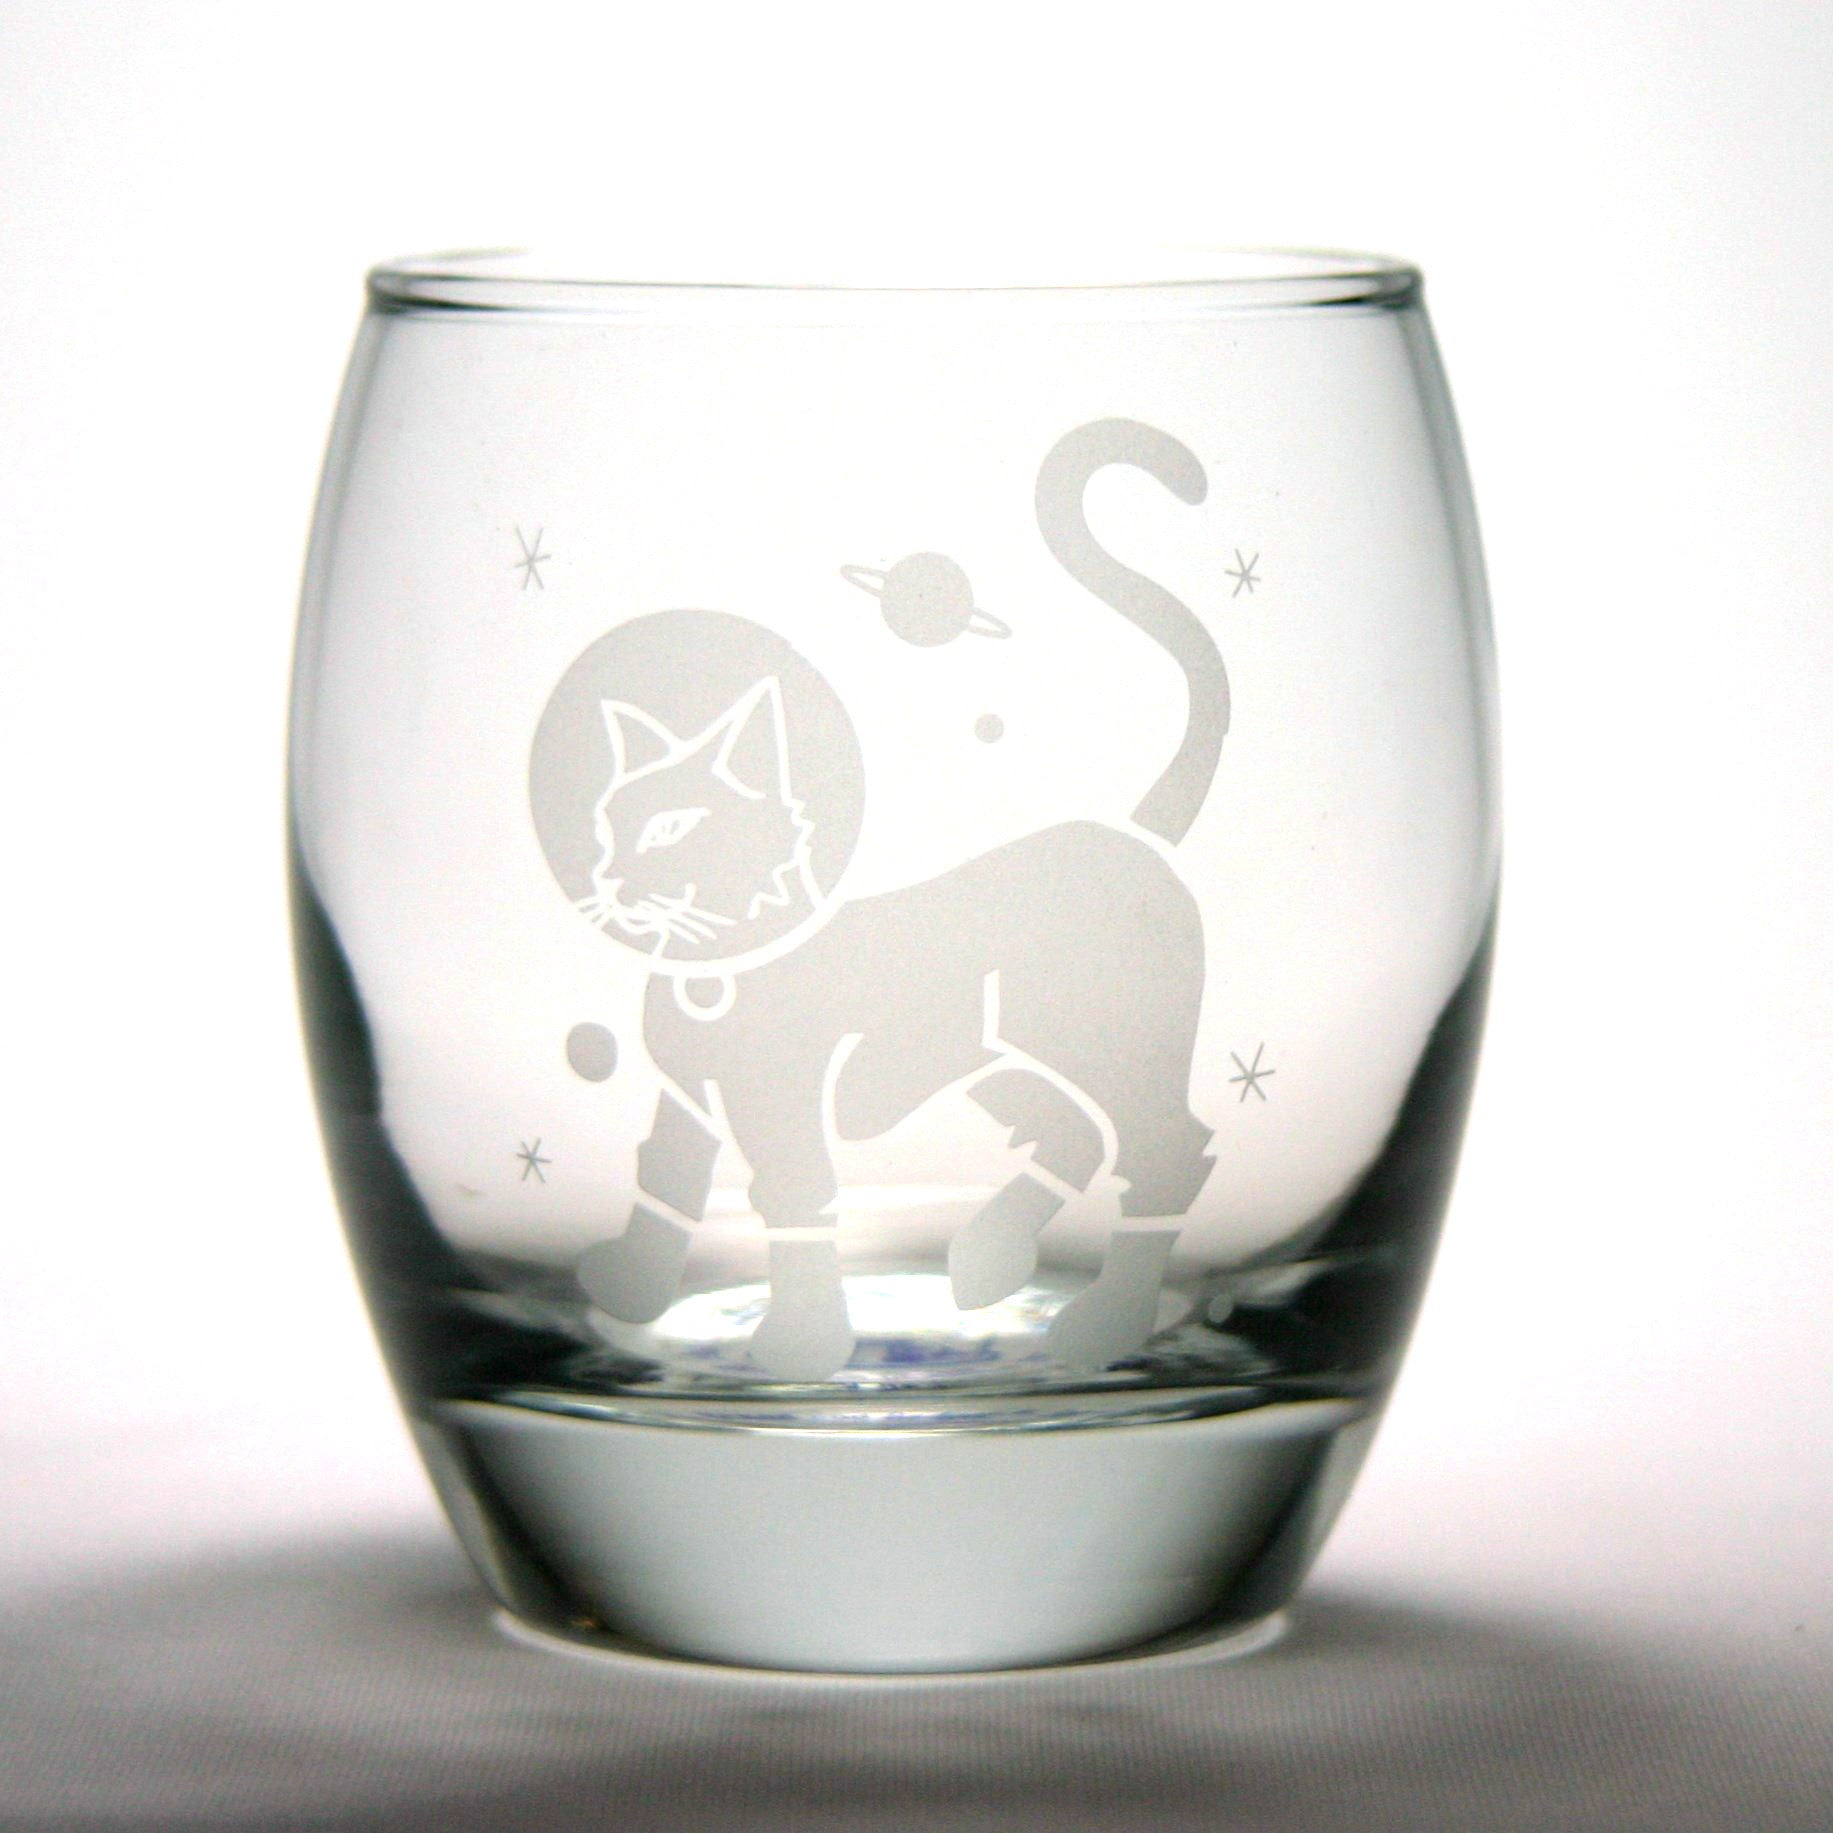 astronaut cat rocks glass